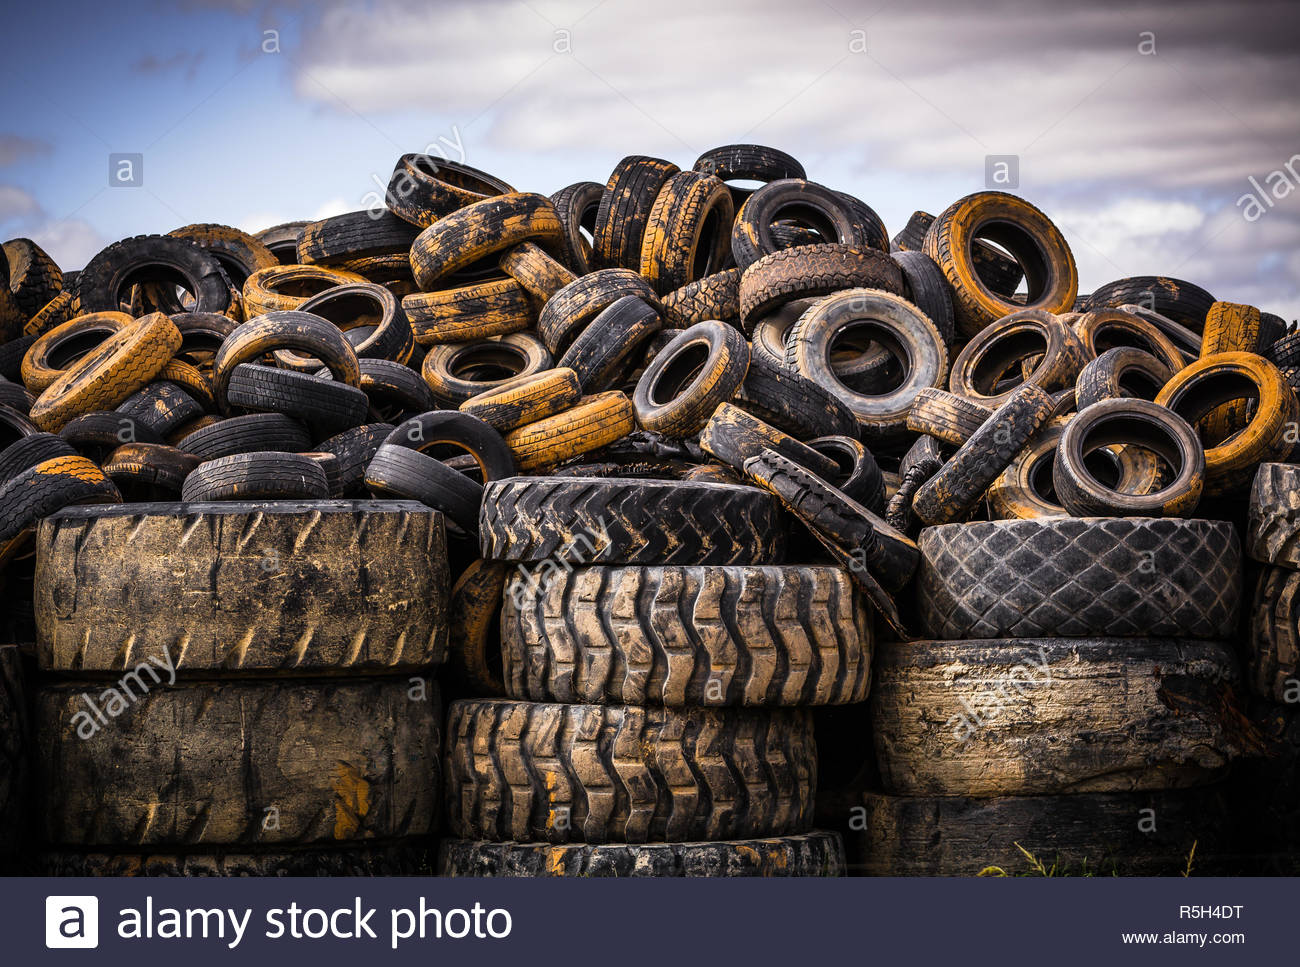 Pile of old used car and truck tires against an afternoon sky in Numurkah, Victoria. - Stock Image